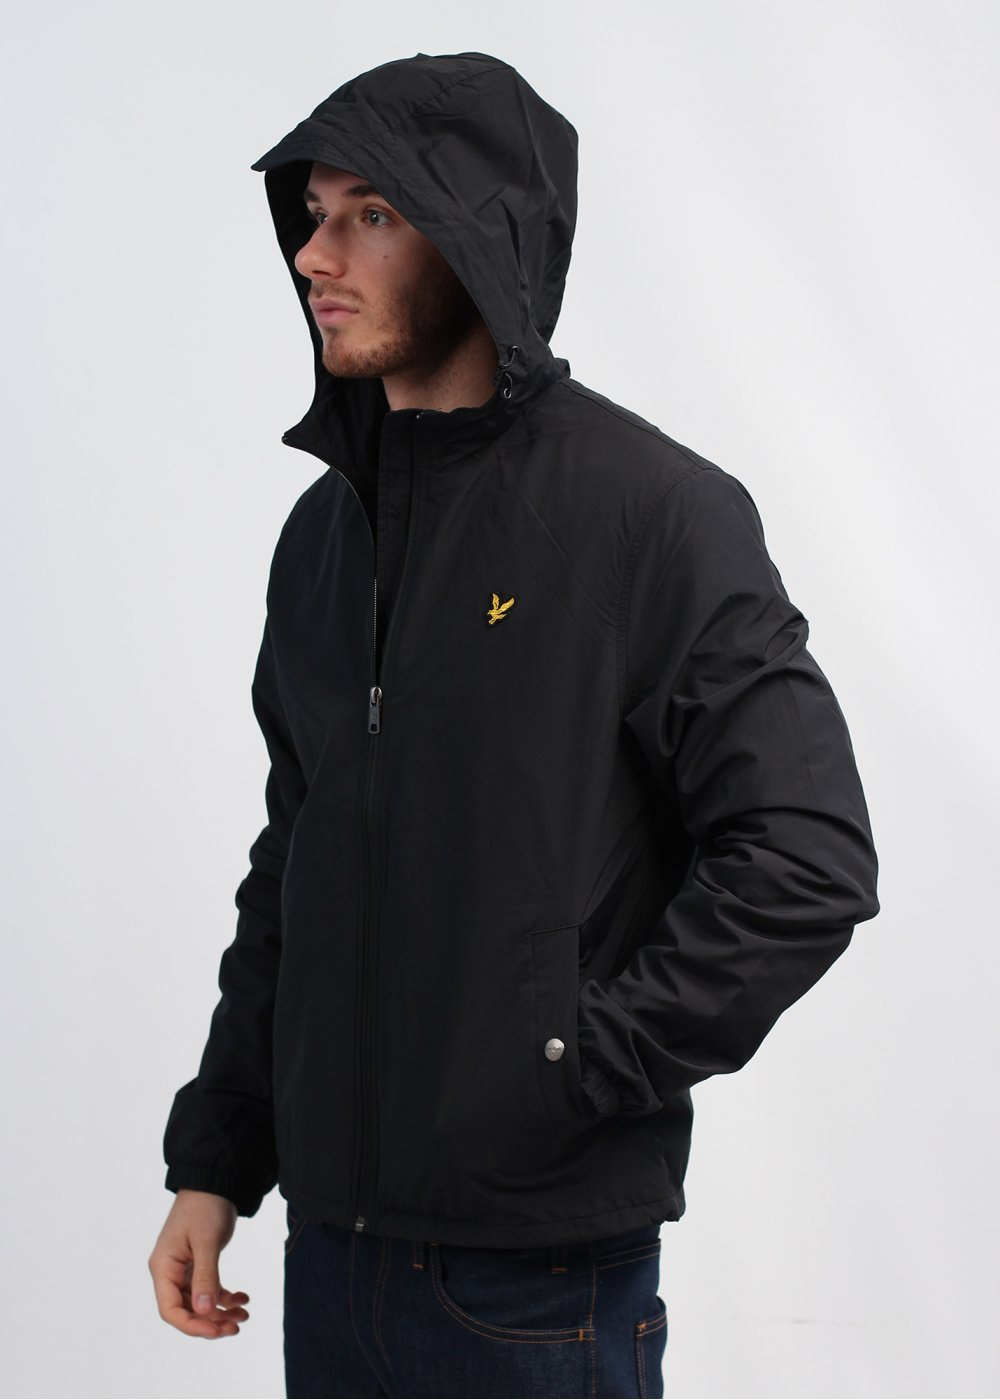 lyle scott vintage hooded jacket black. Black Bedroom Furniture Sets. Home Design Ideas